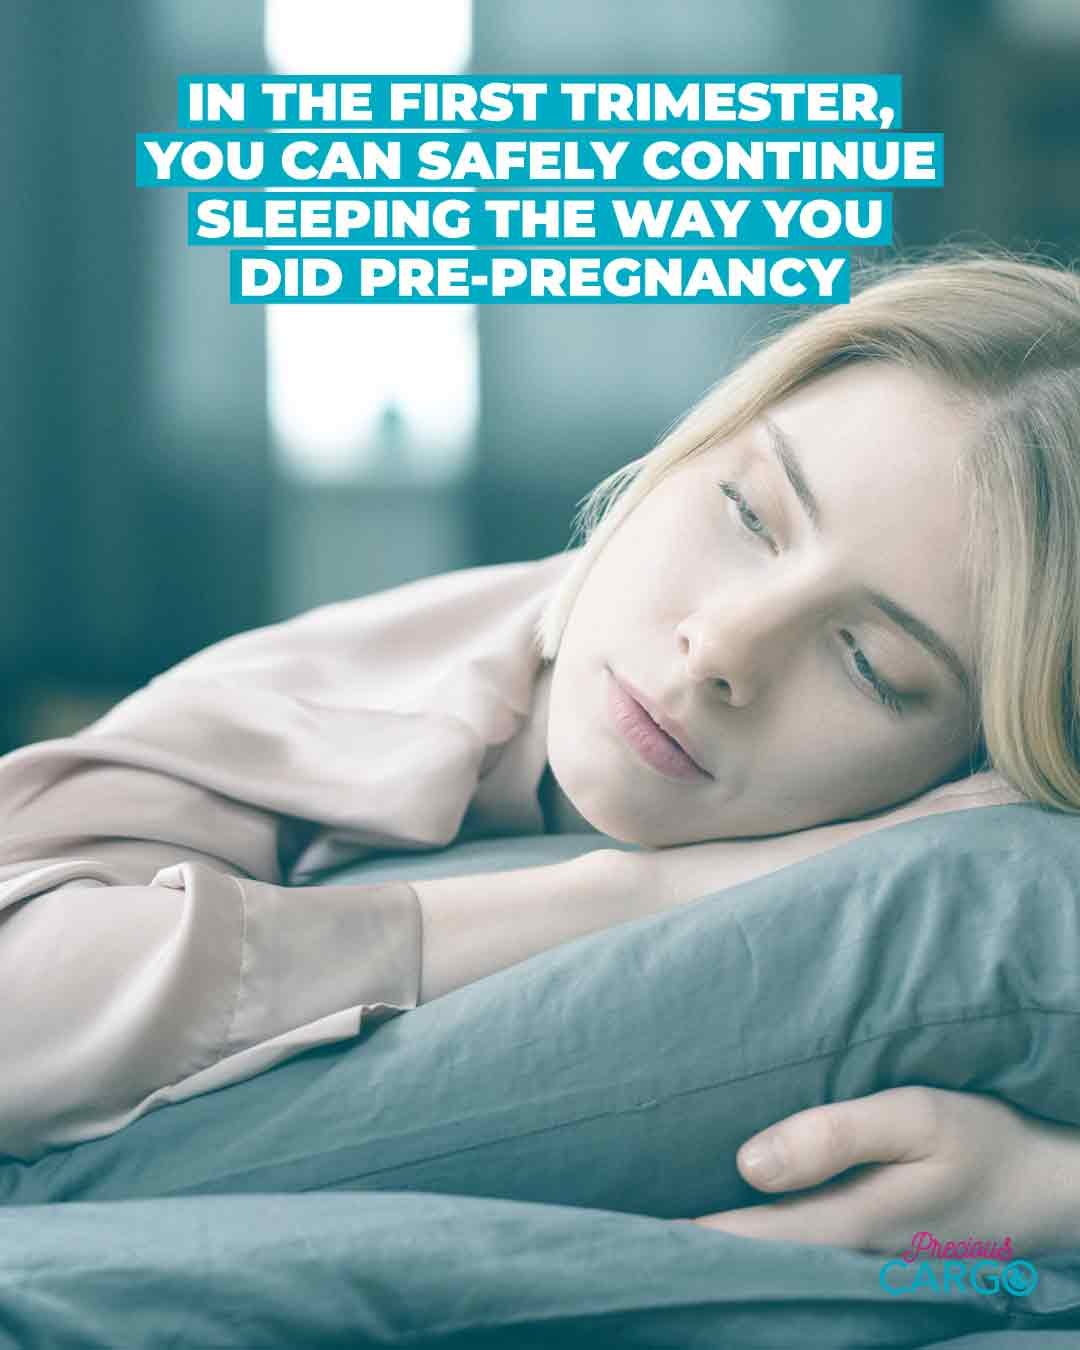 Sleeping in the first trimester of pregnancy